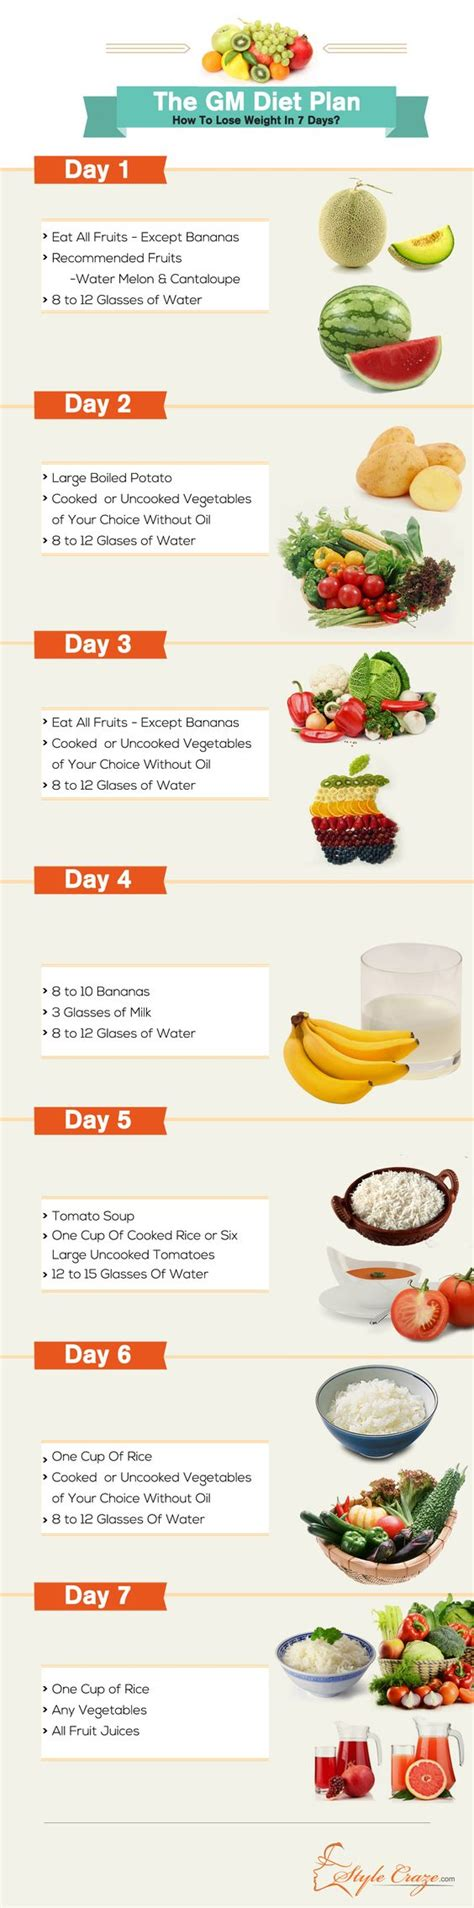 Blueprint Detox Diet by The Gm Diet Plan How To Lose Weight In Just 7 Days